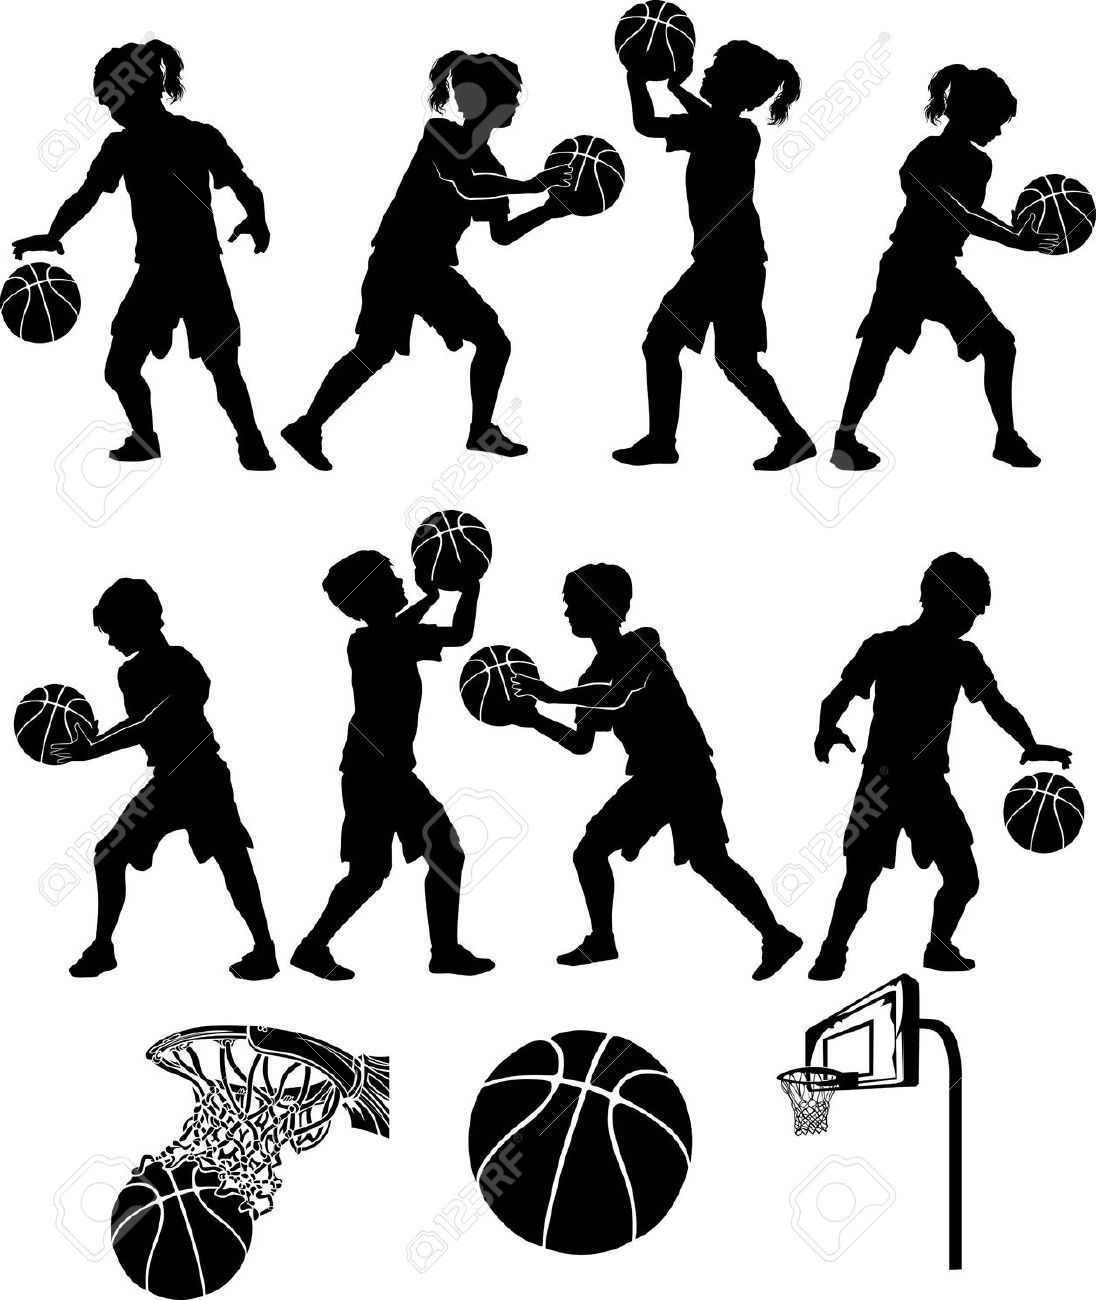 Stock Vector Kids silhouette, Basketball players, Silhouette